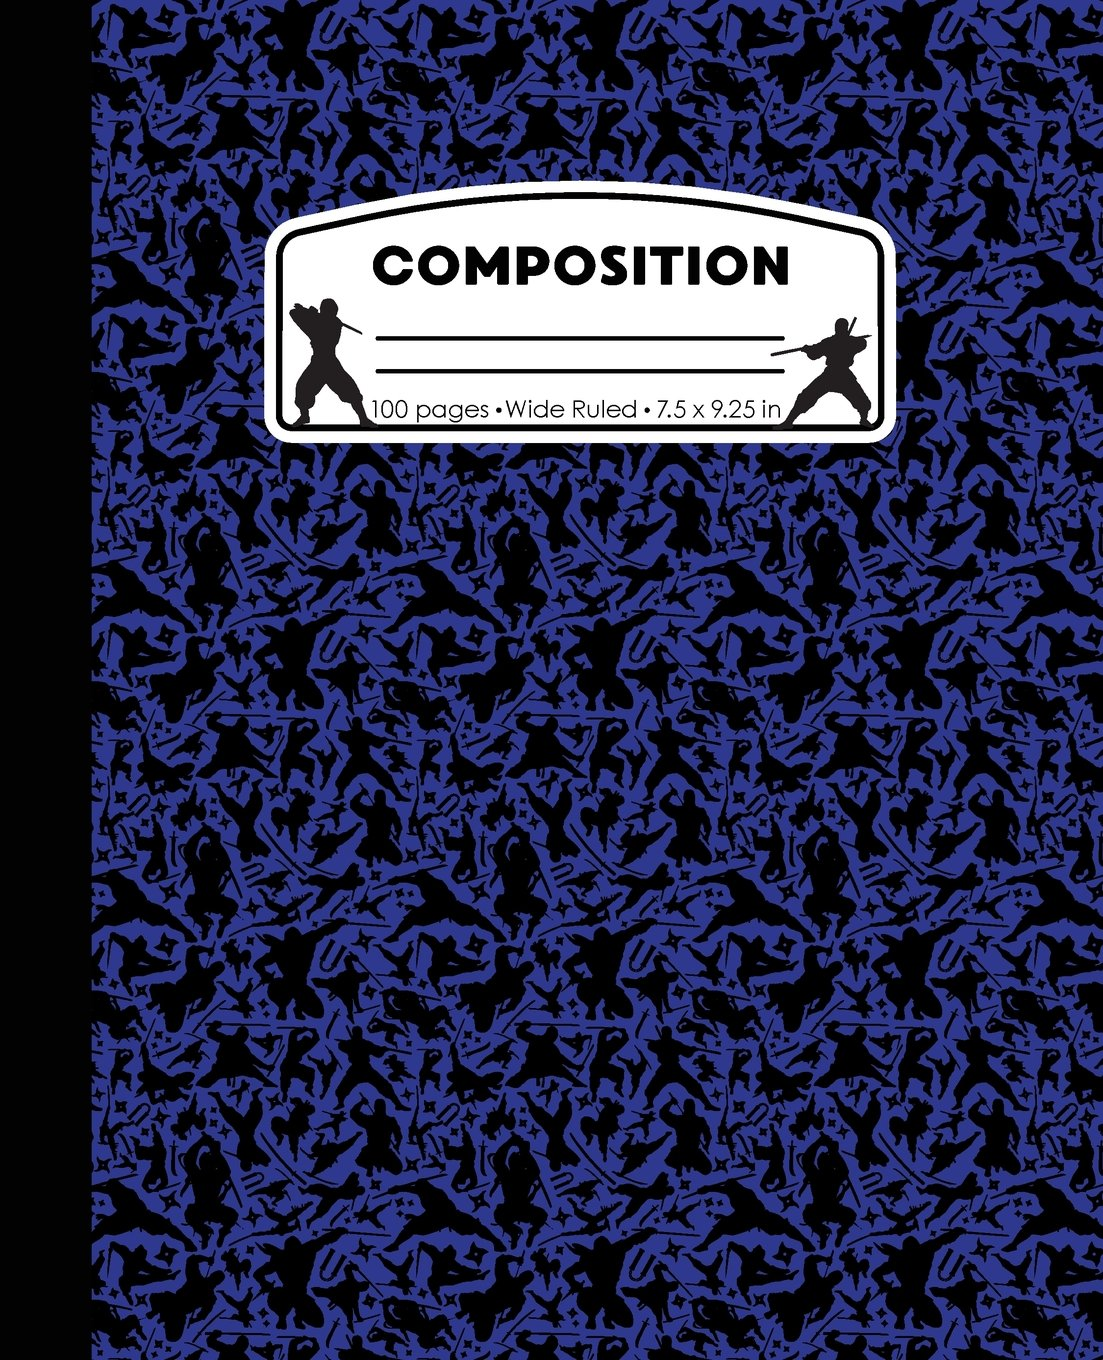 Composition: Ninja Blue Marble Composition Notebook. Ninjas Wide Ruled 7.5 x 9.25 in, 100 pages journal for girls boys, kids, elementary school students and teachers (Ninja Marble Composition Books) ebook